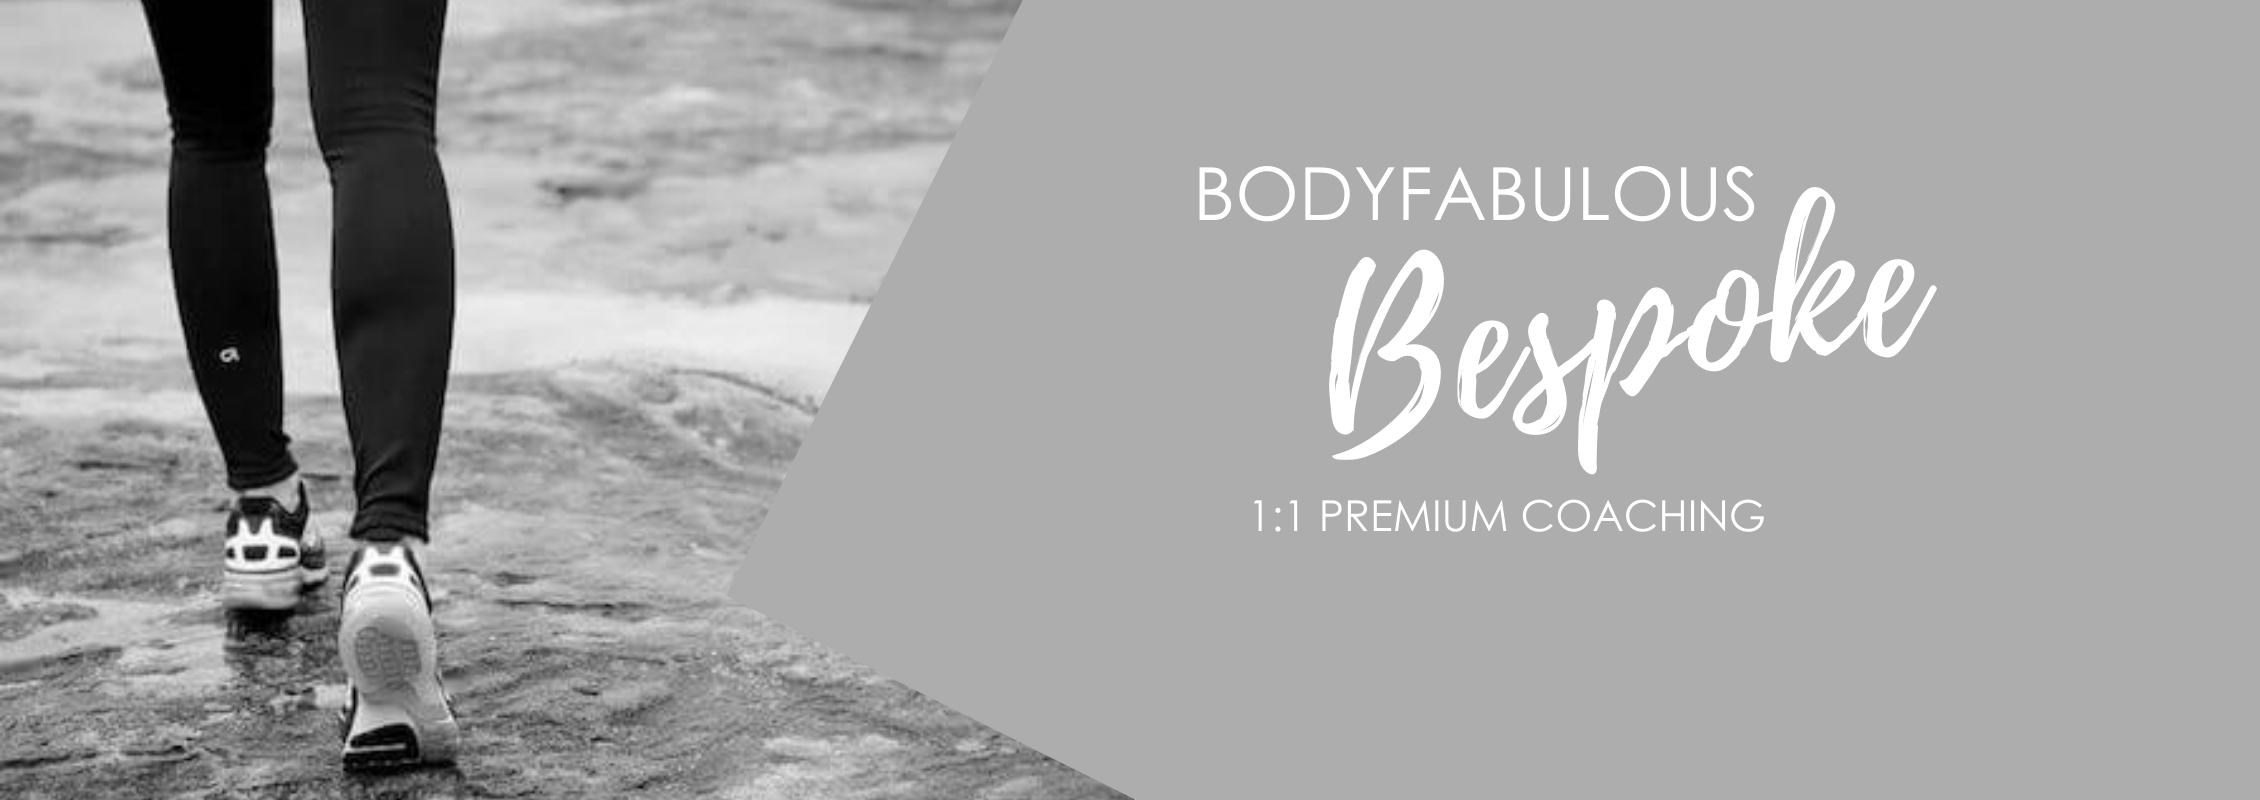 bodyfabulous_bespoke_coaching_pregnancy_postpartum_personal_trainer